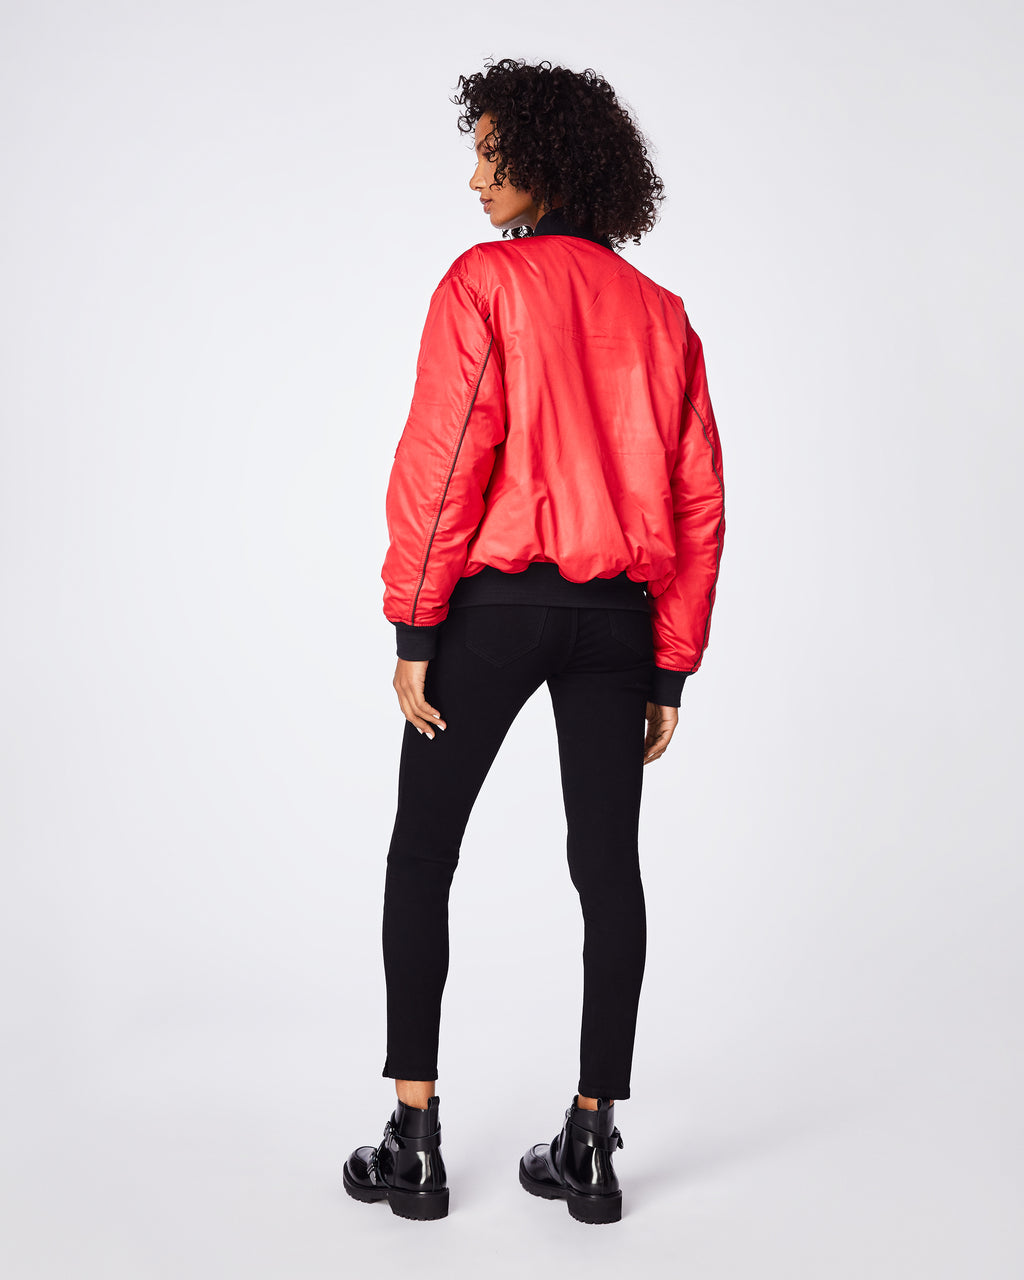 BQ10317 - REVERSIBLE BOMBER - outerwear - coats - This bomber has the classic fit and ribbed trim of a vintage athletic jacket with pipping detail. Keep your closet versatile due to the fact it's reversible - black and a pop of color is the perfect combo.